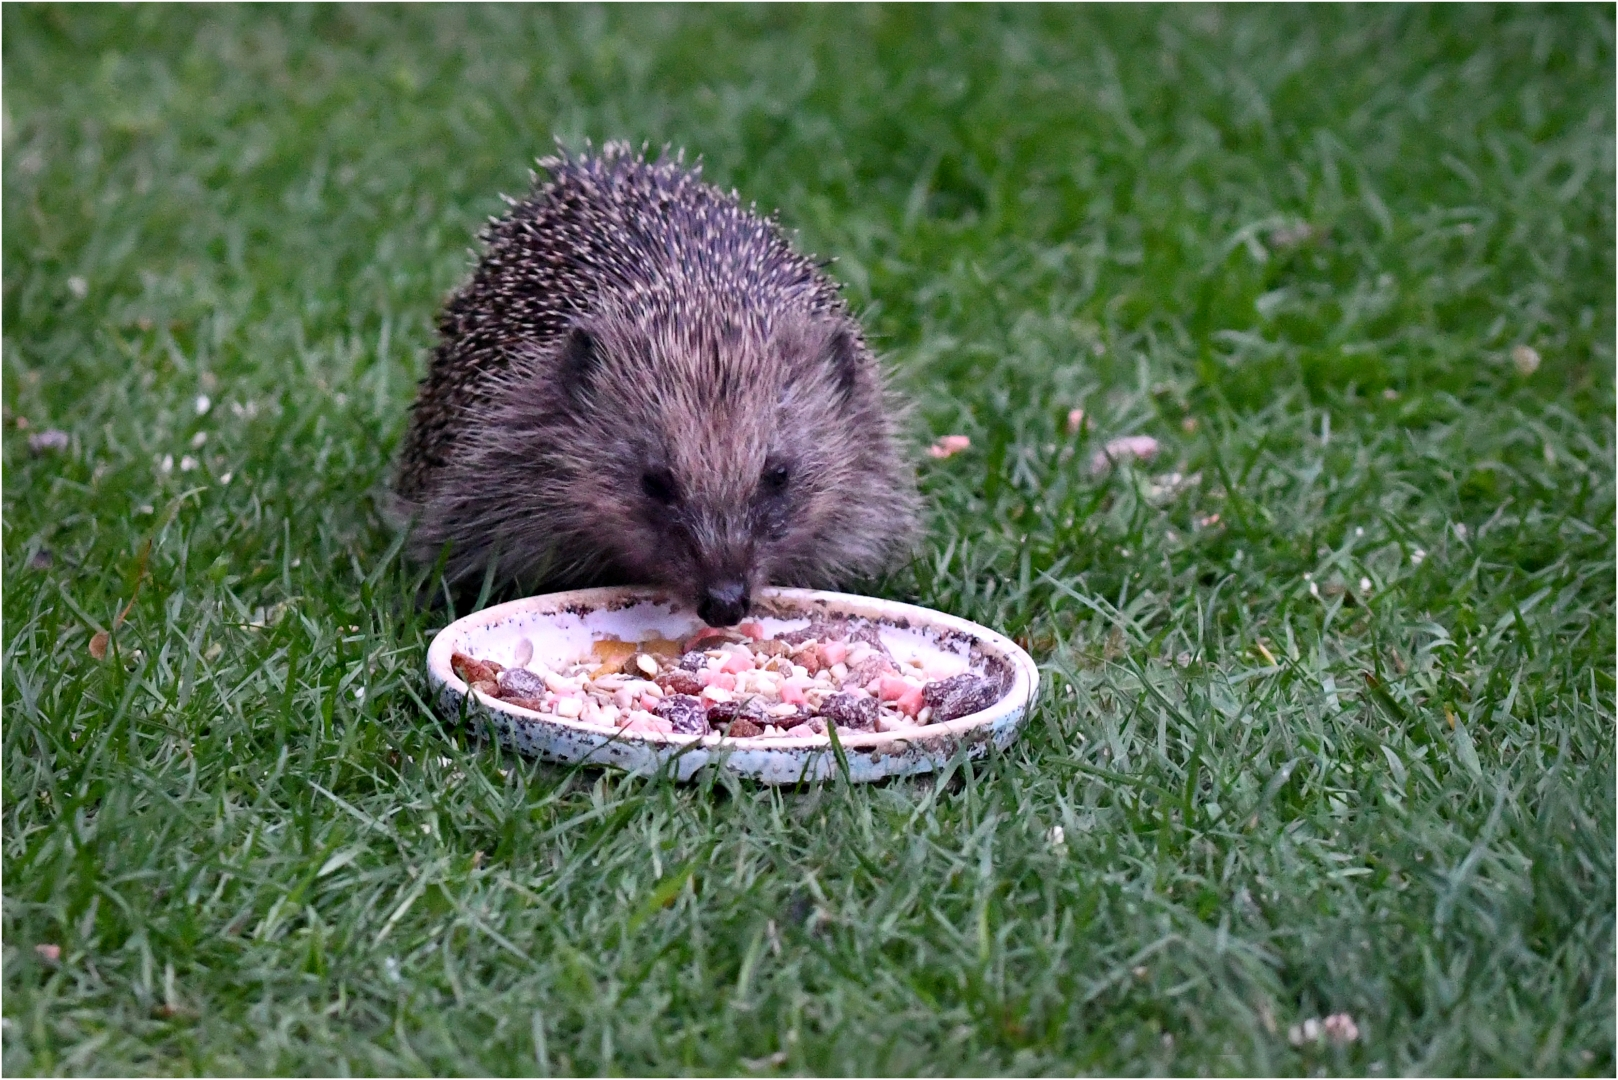 5042_Hedgehog_David Mitchell